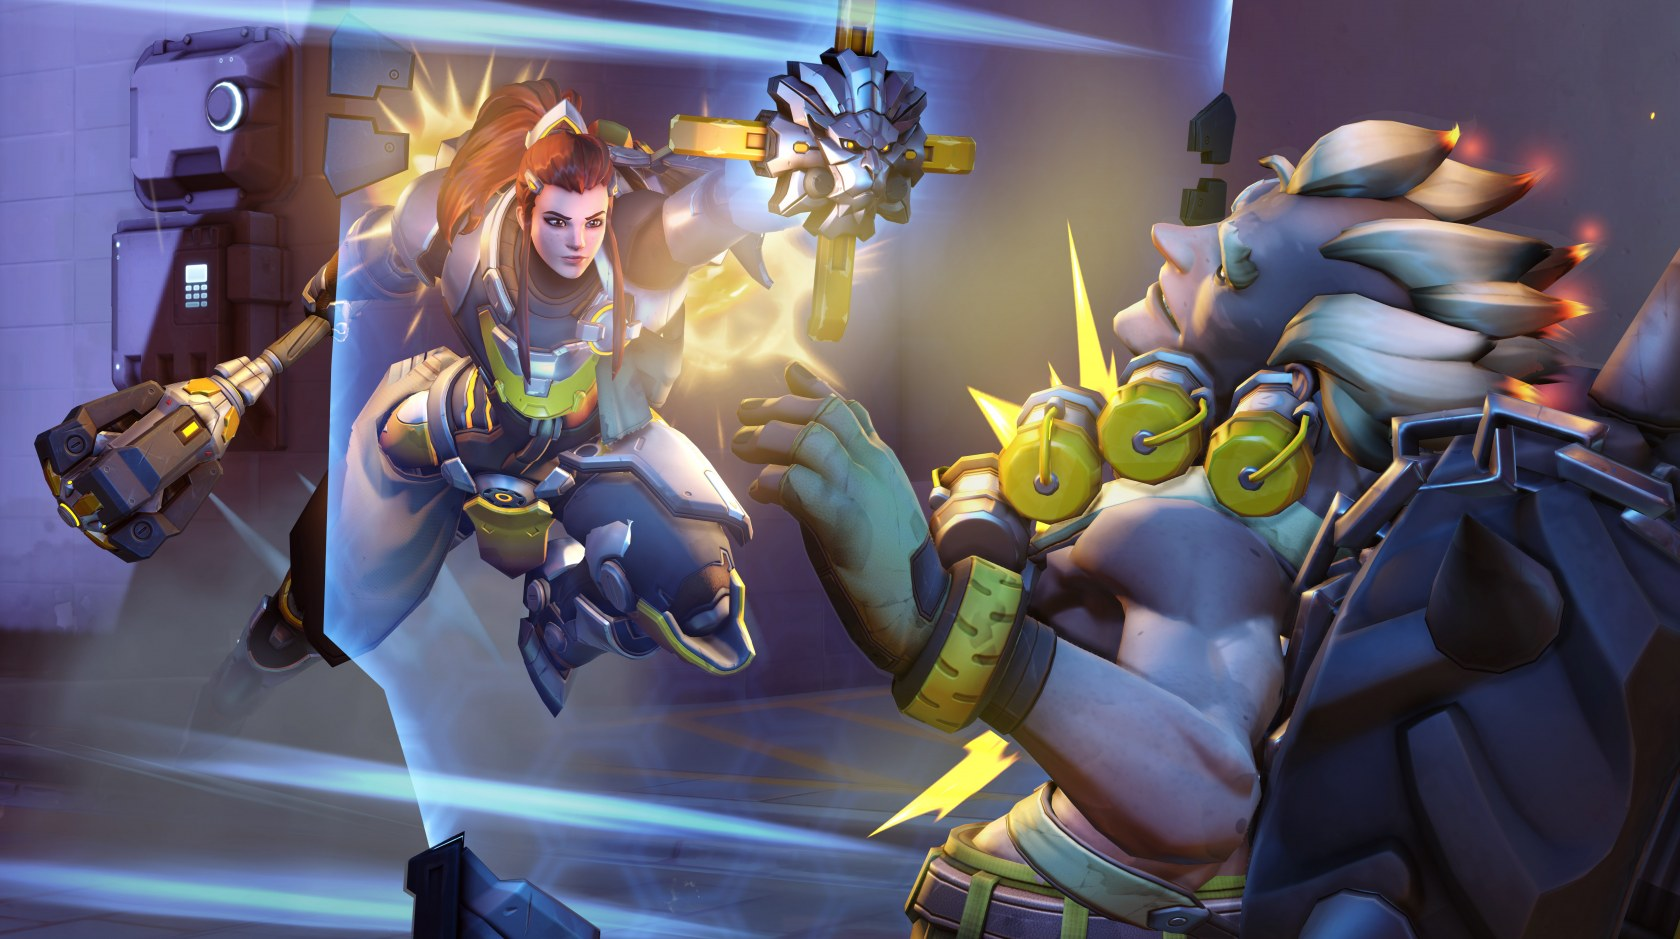 Overwatch is free-to-play until December 4 as part of Blizzard's Black Friday sale